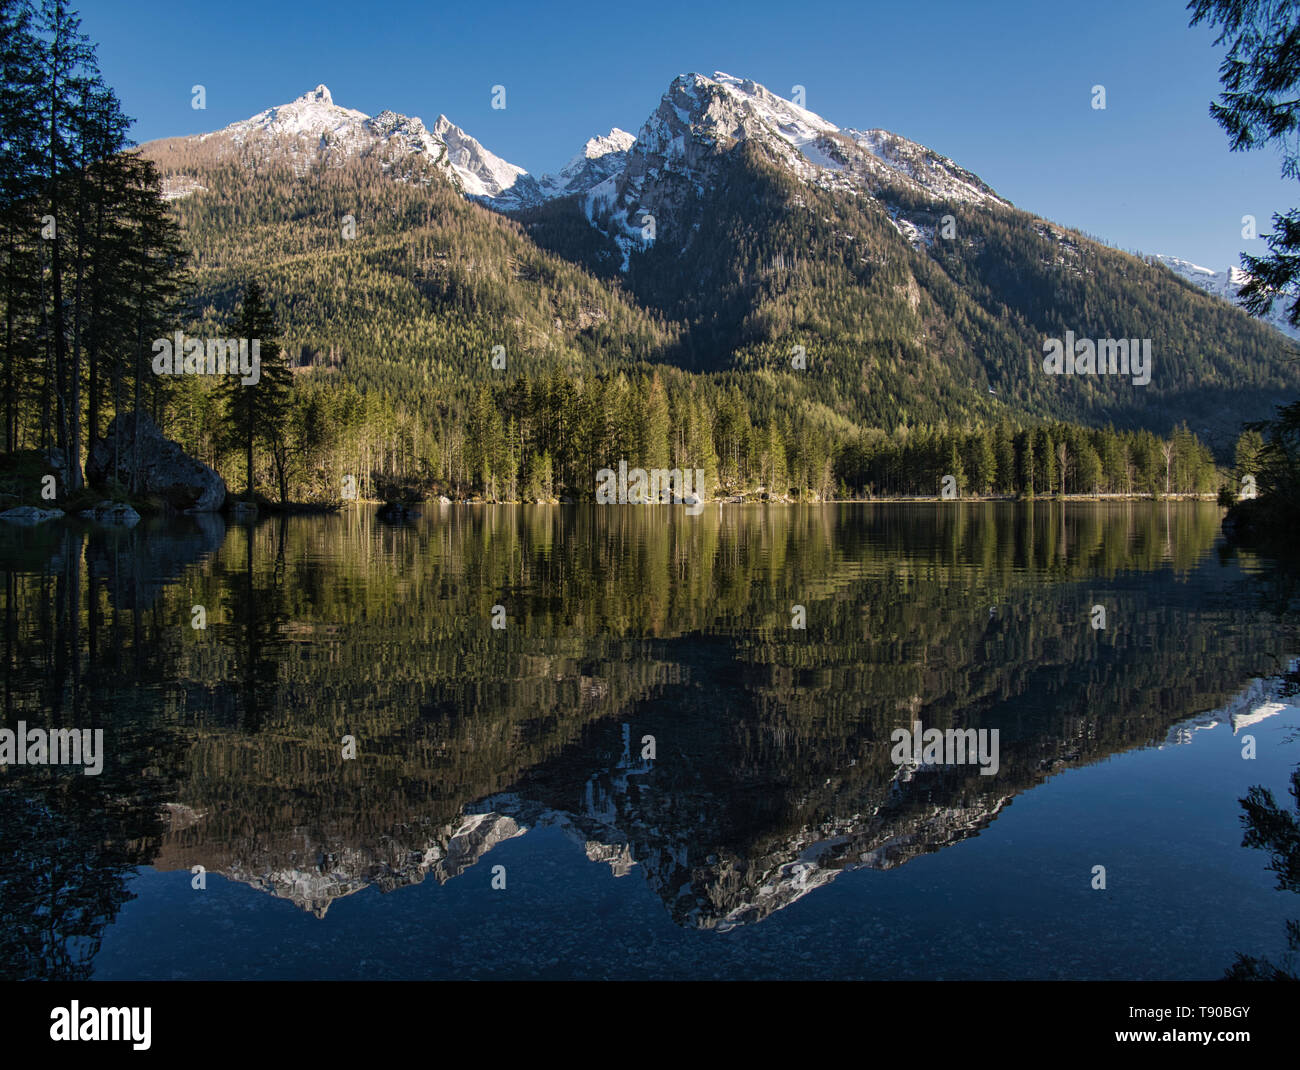 The still snow-covered mountains are reflected in the crystal-clear Hintersee lake. - Stock Image